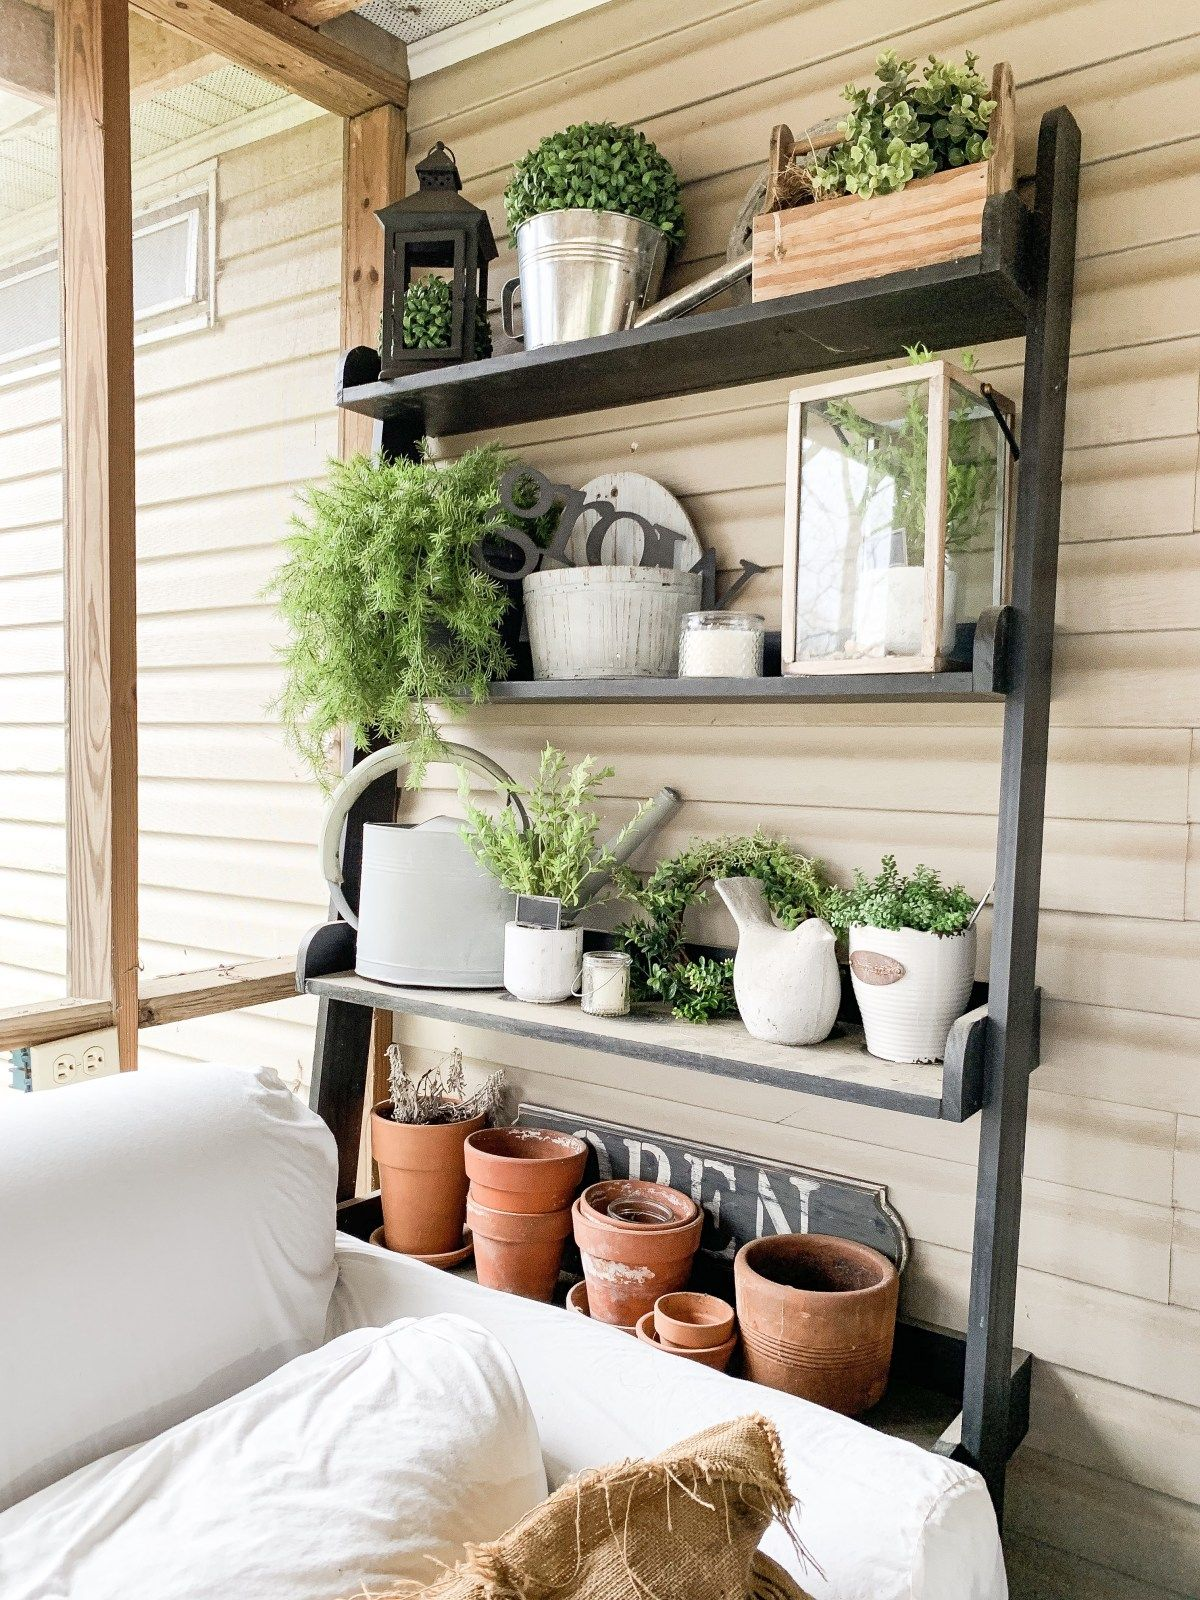 The Best Farmhouse Decor to Buy at Thrift Stores Lainey